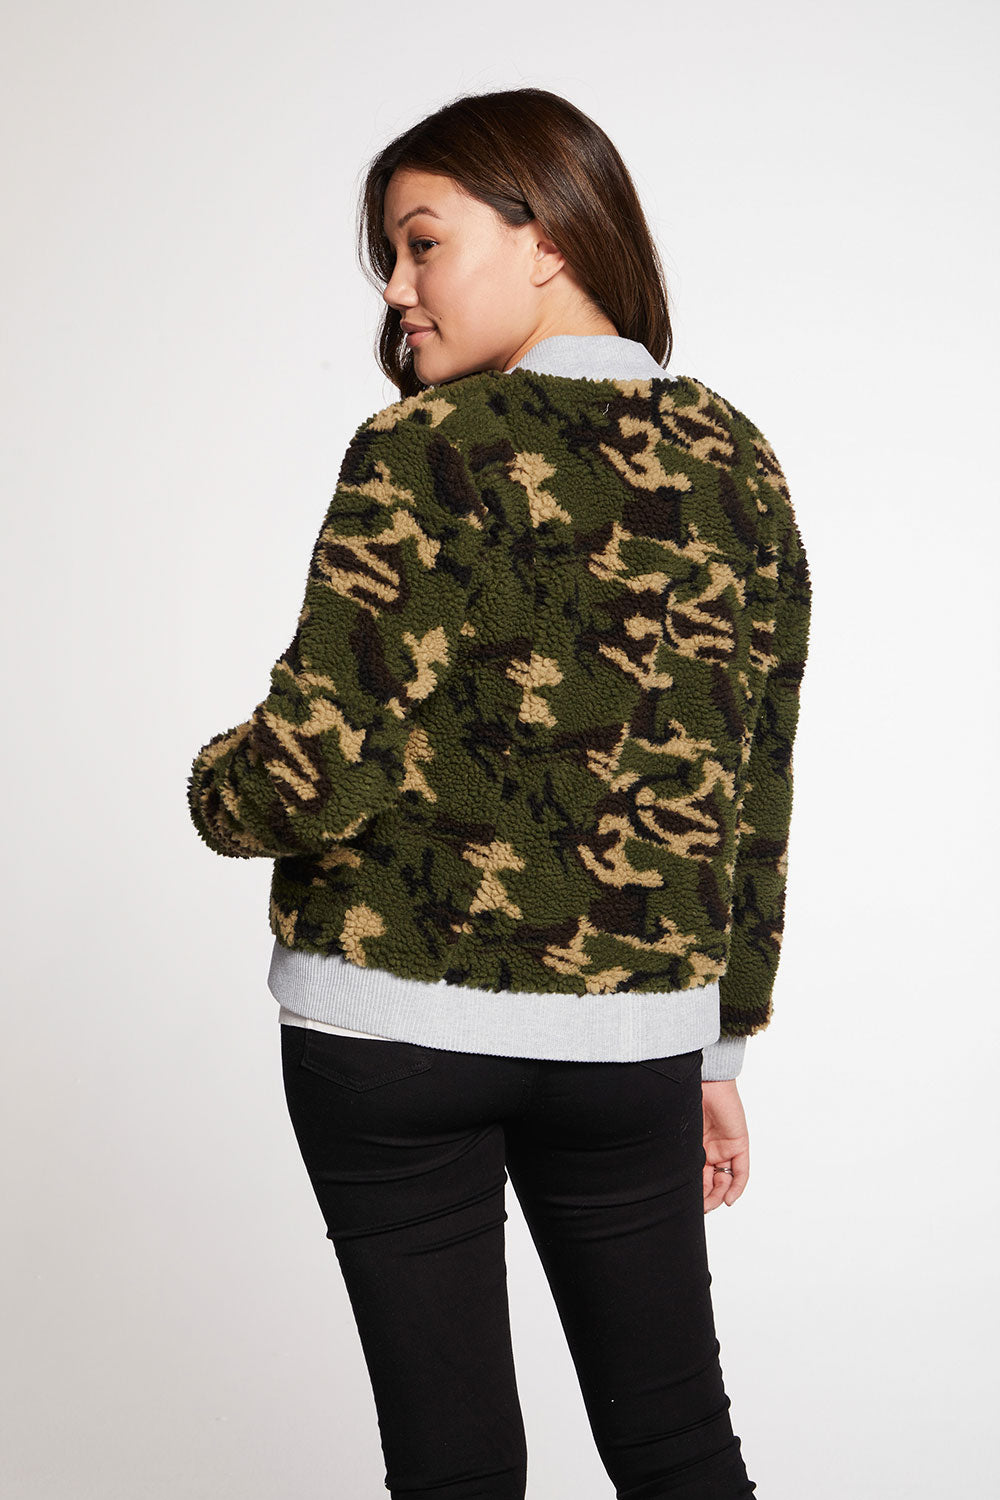 Camo Faux Fur Long Sleeve Bomber Jacket WOMENS - chaserbrand